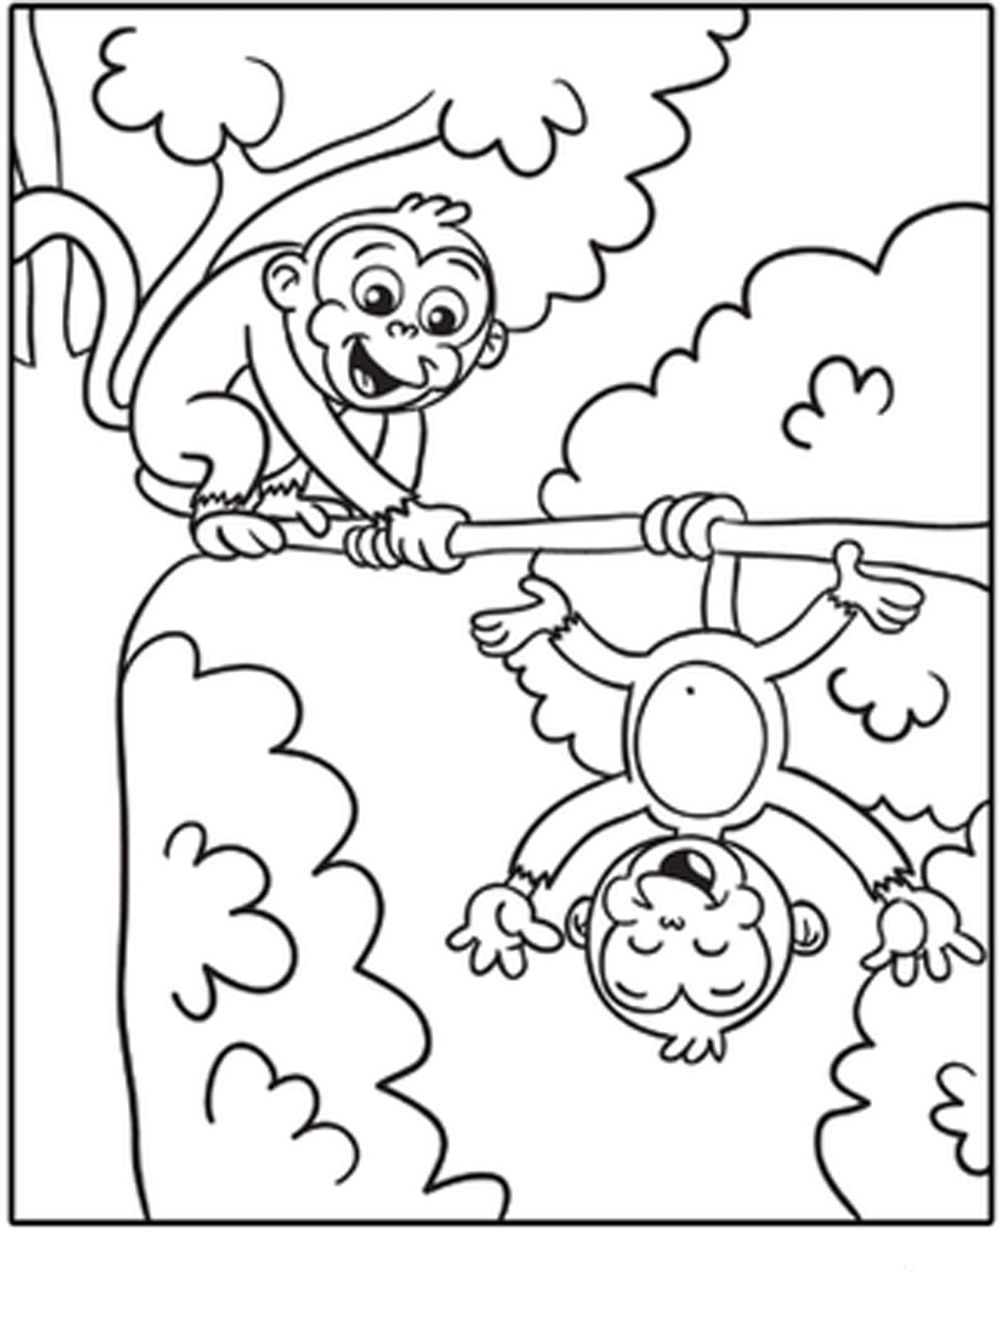 Free-Printable-Monkey-Coloring-Pages     Bestappsforkids - Free Printable Monkey Coloring Pages